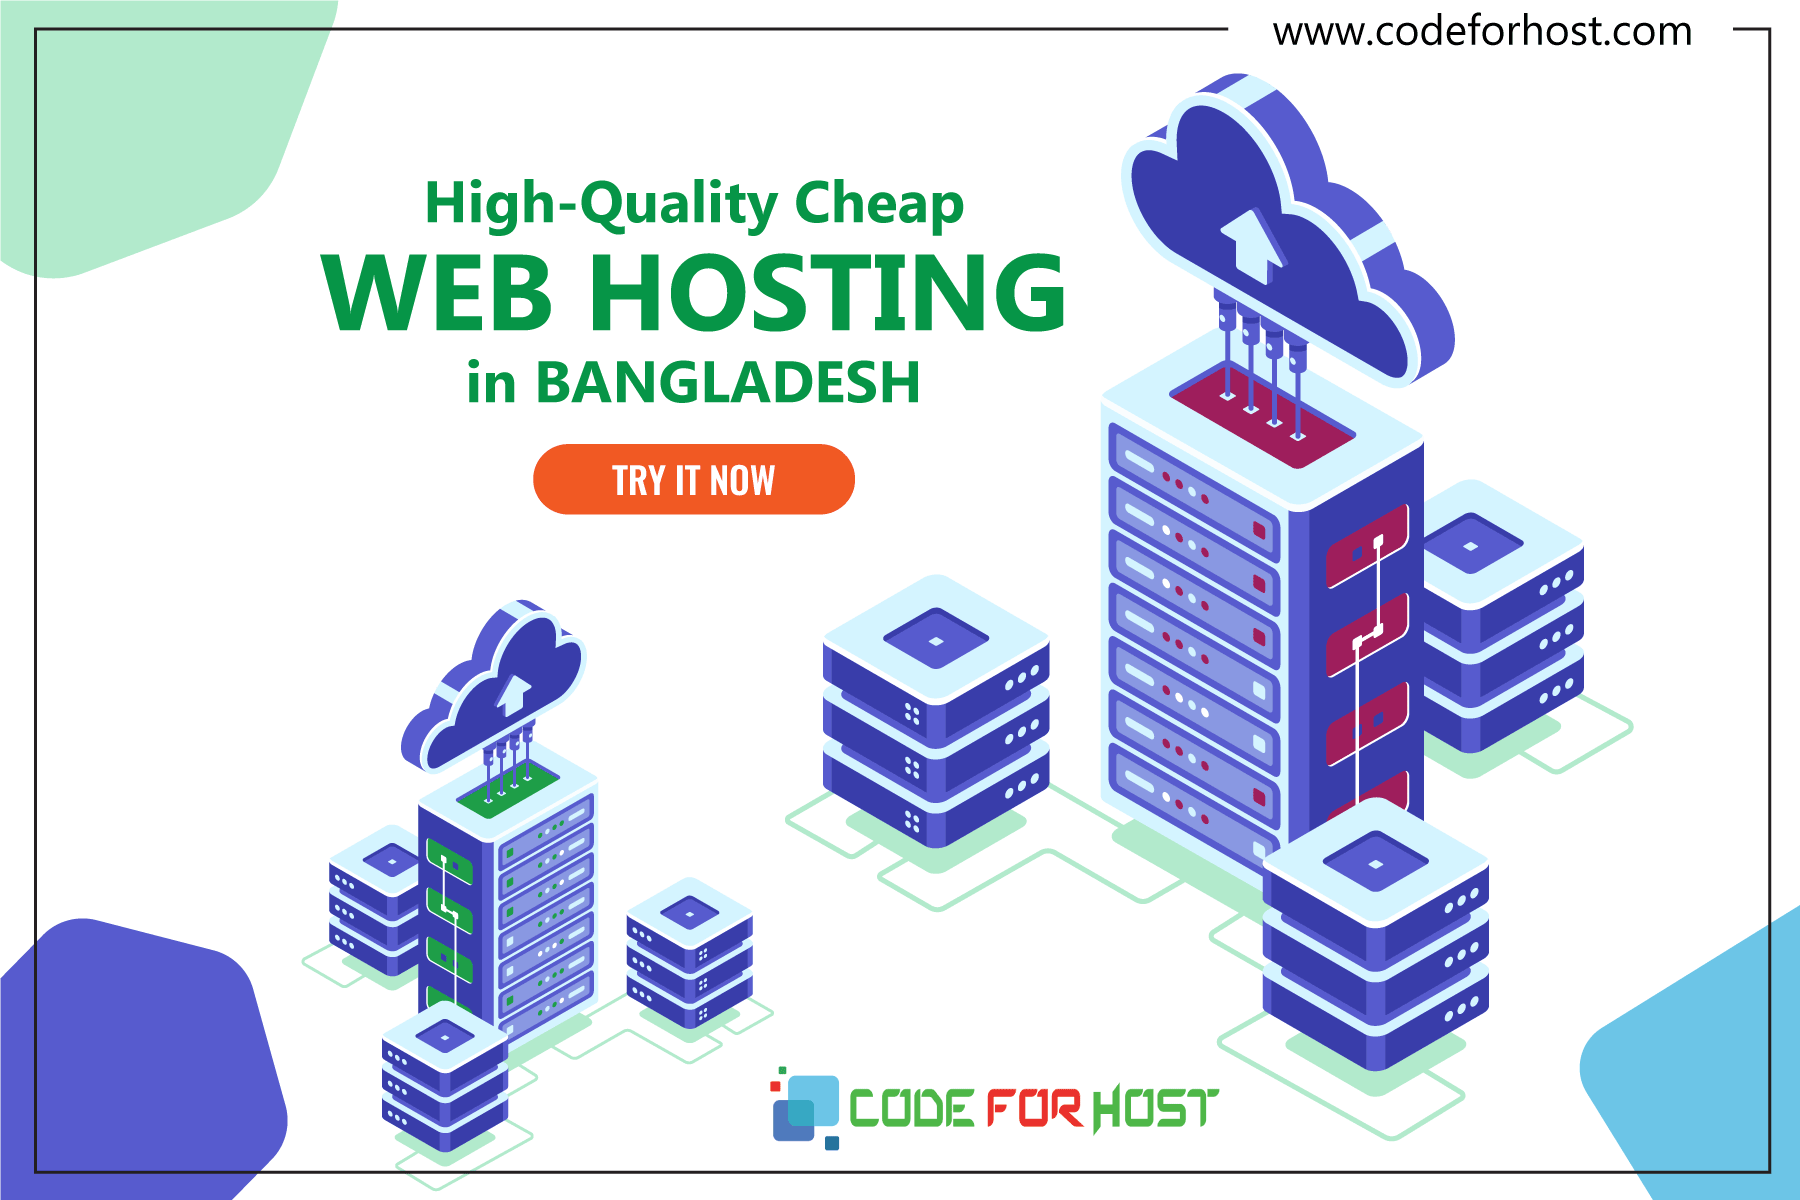 Quality Cheap Web Hosting in Bangladesh